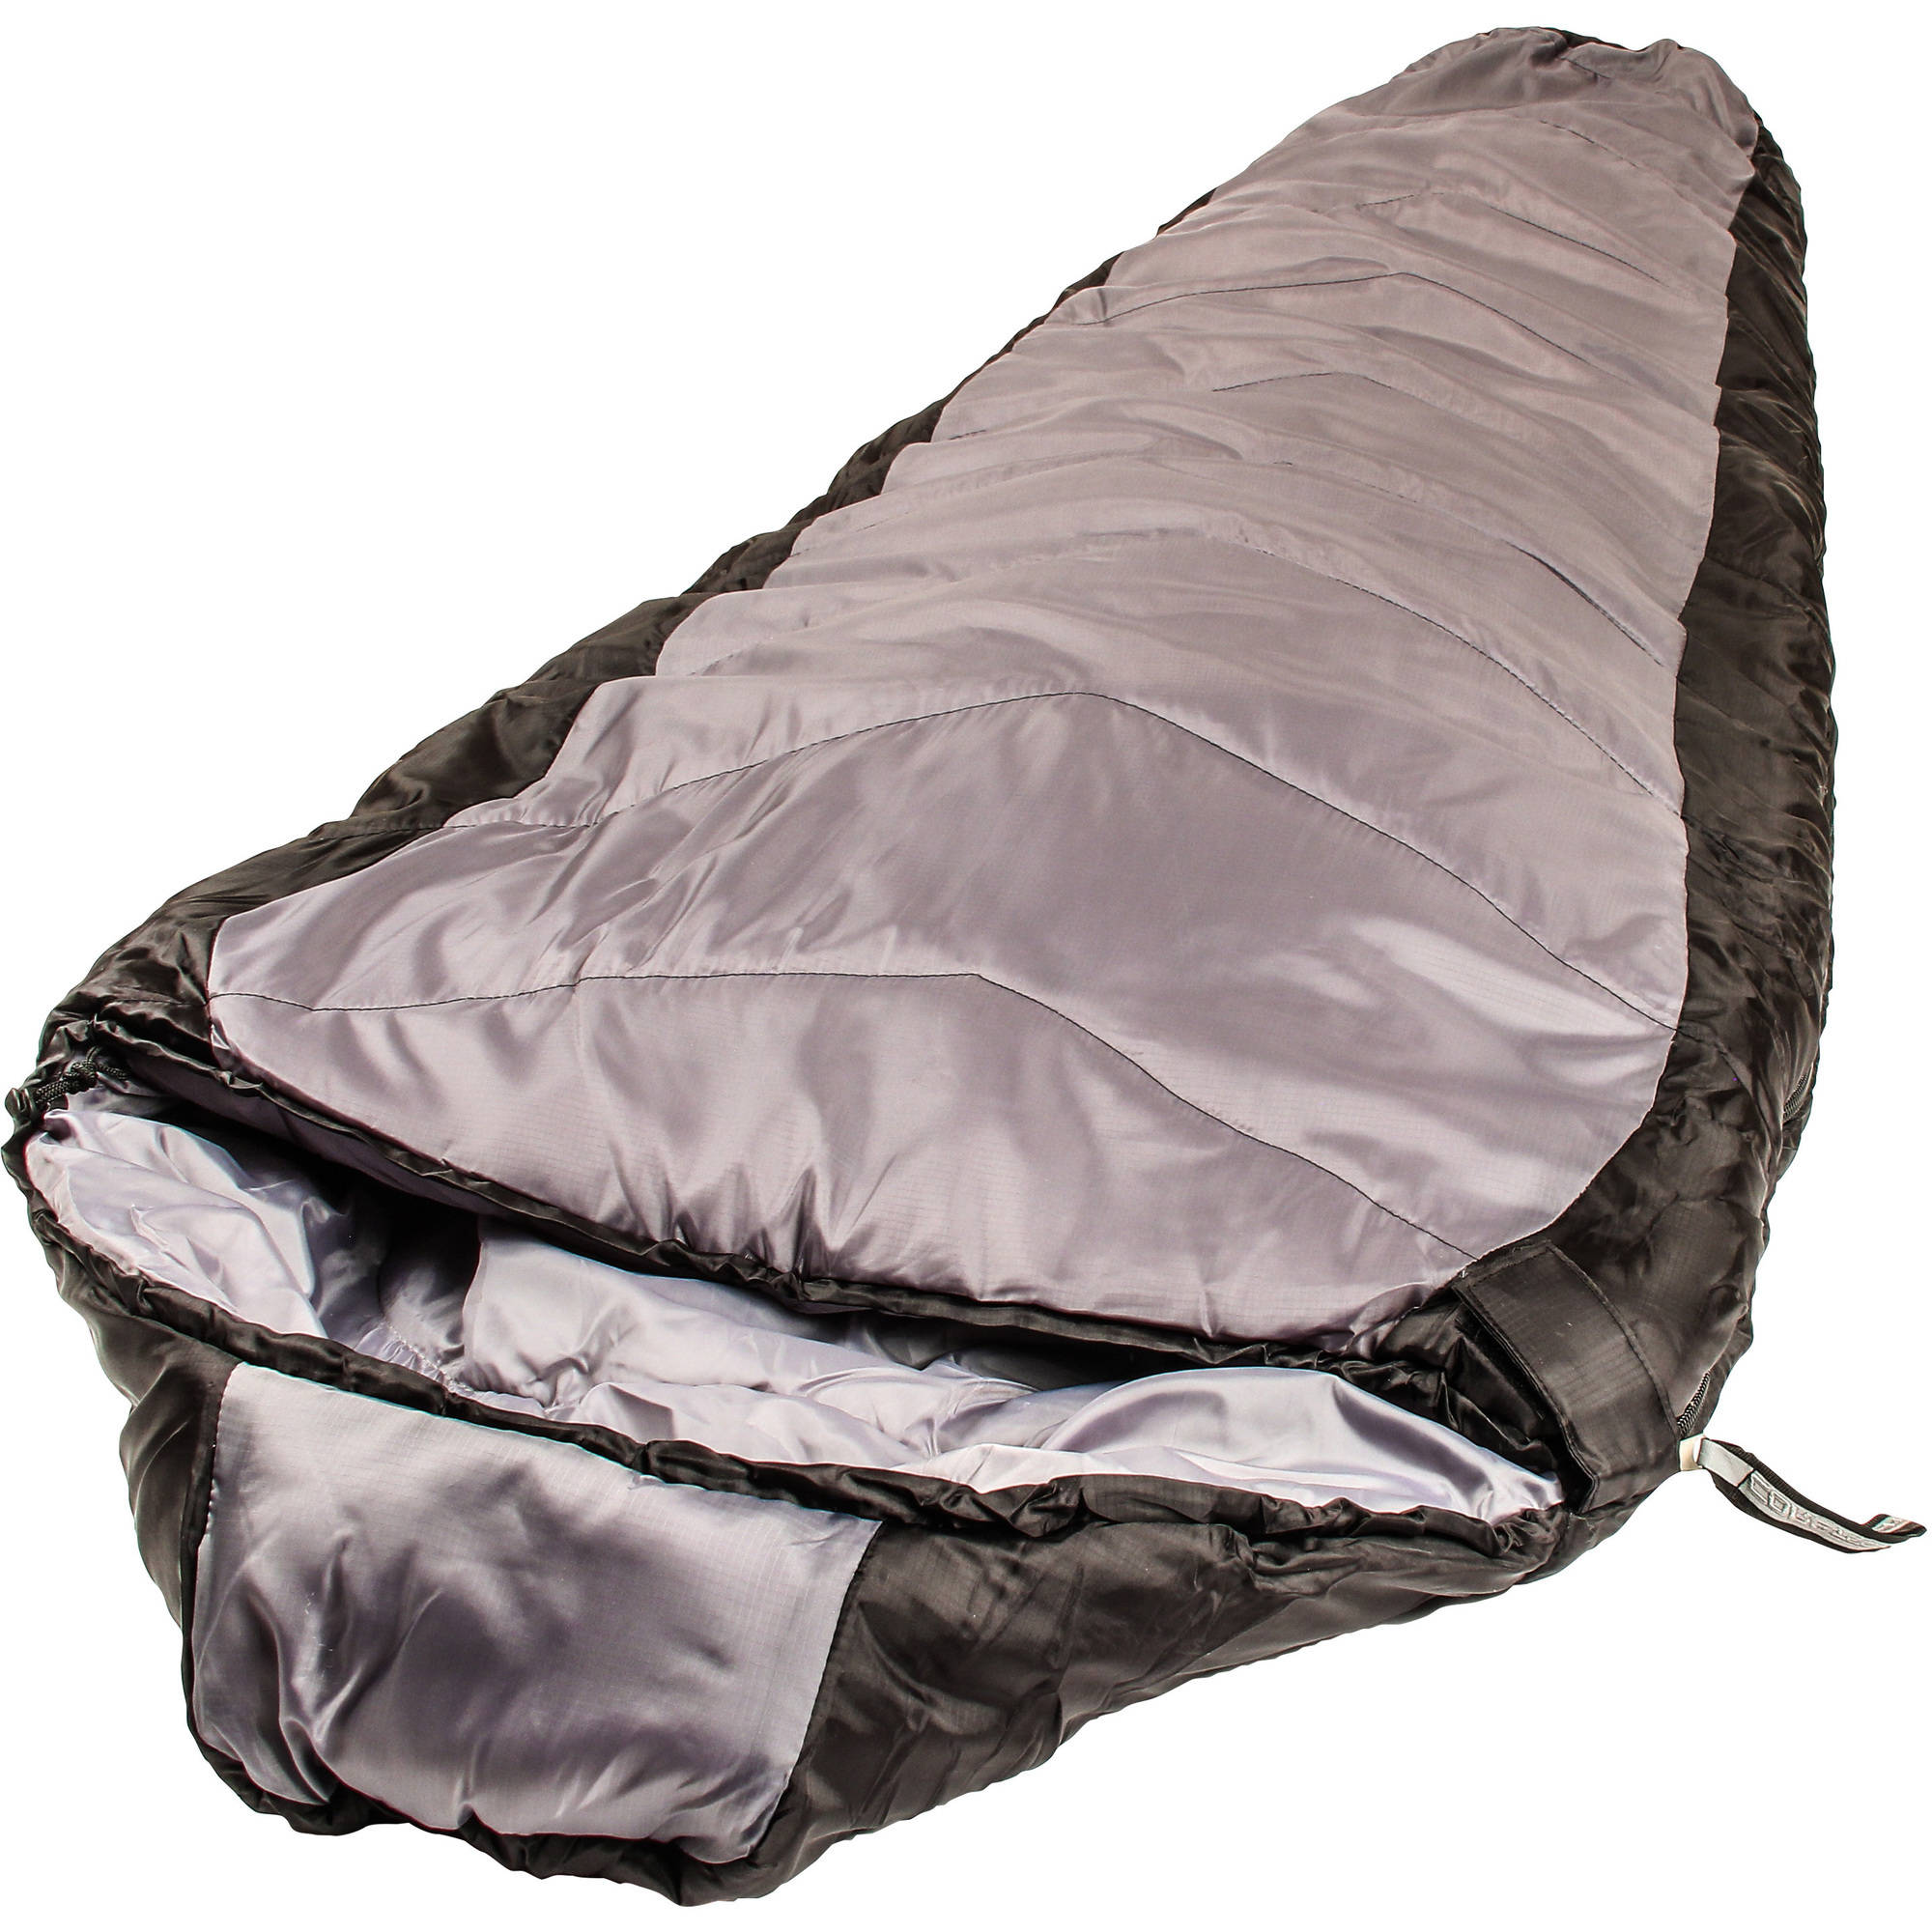 North Star TOSB-Tactical Operations Sleeping Bag Black by NORTH STAR SPORTS